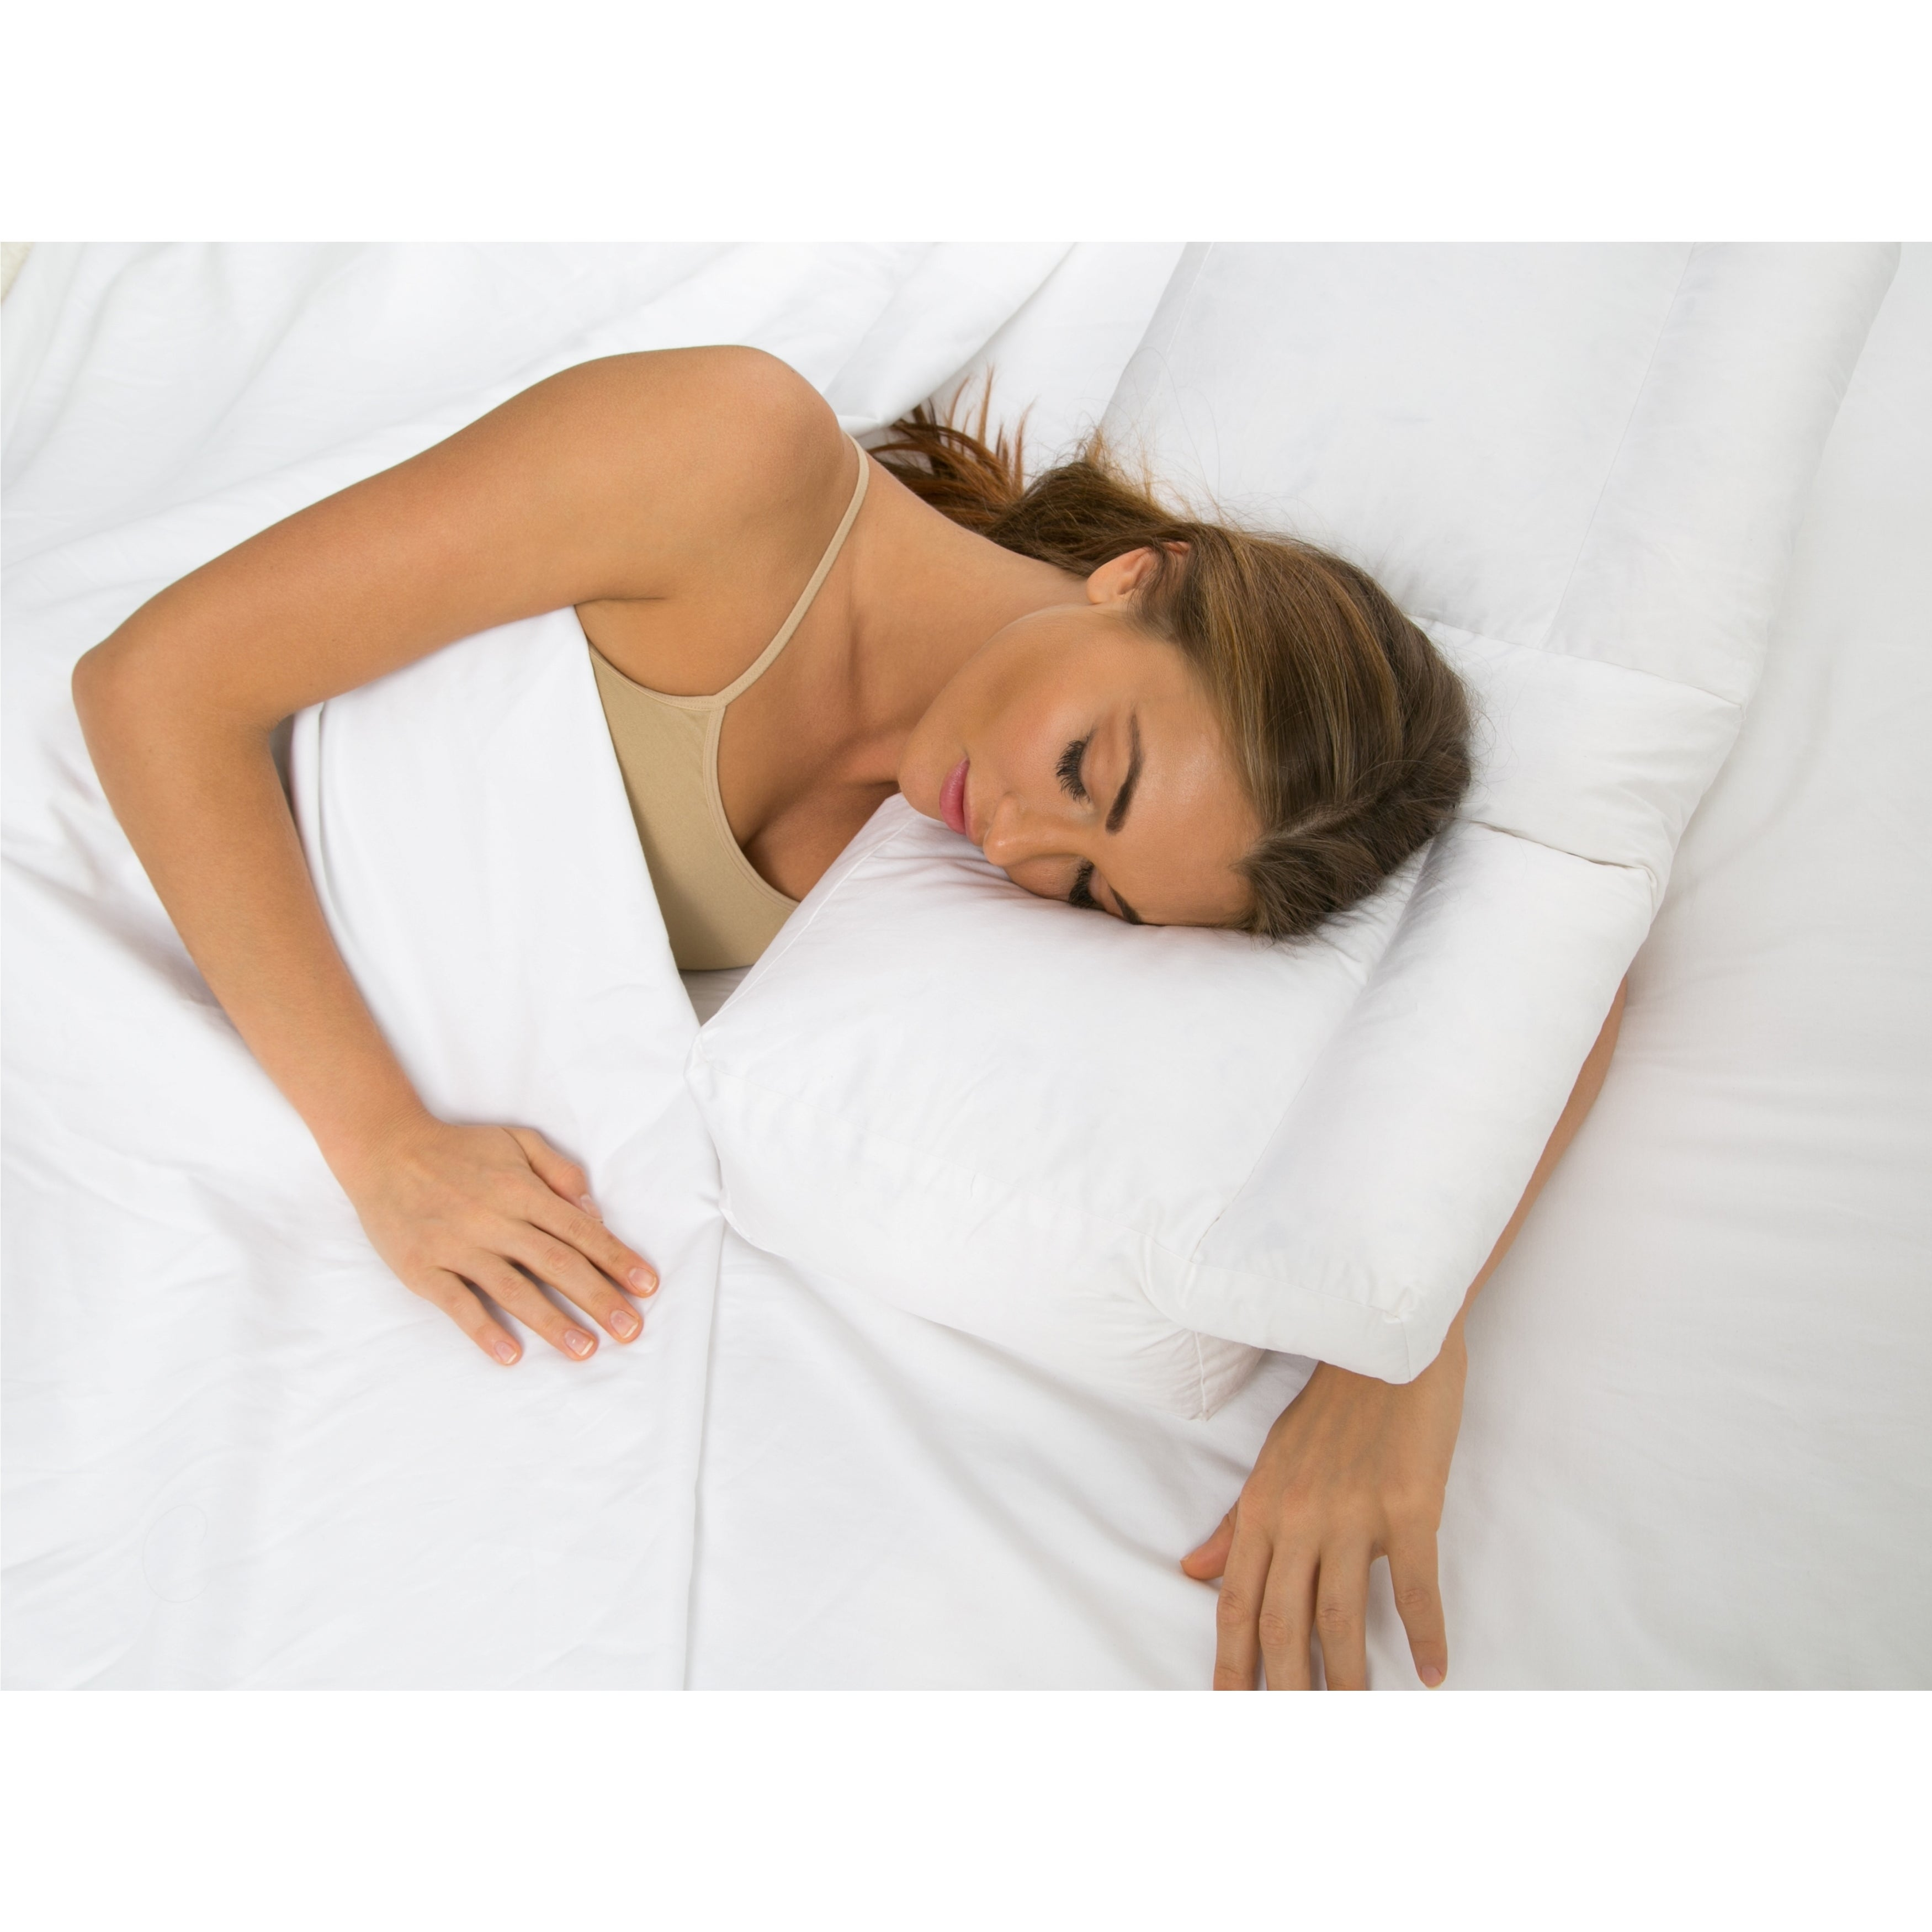 new stomach gallery memory foam for best sleeper pillow alternative pillows ideas blanket sleepers sealy down cushion awesome